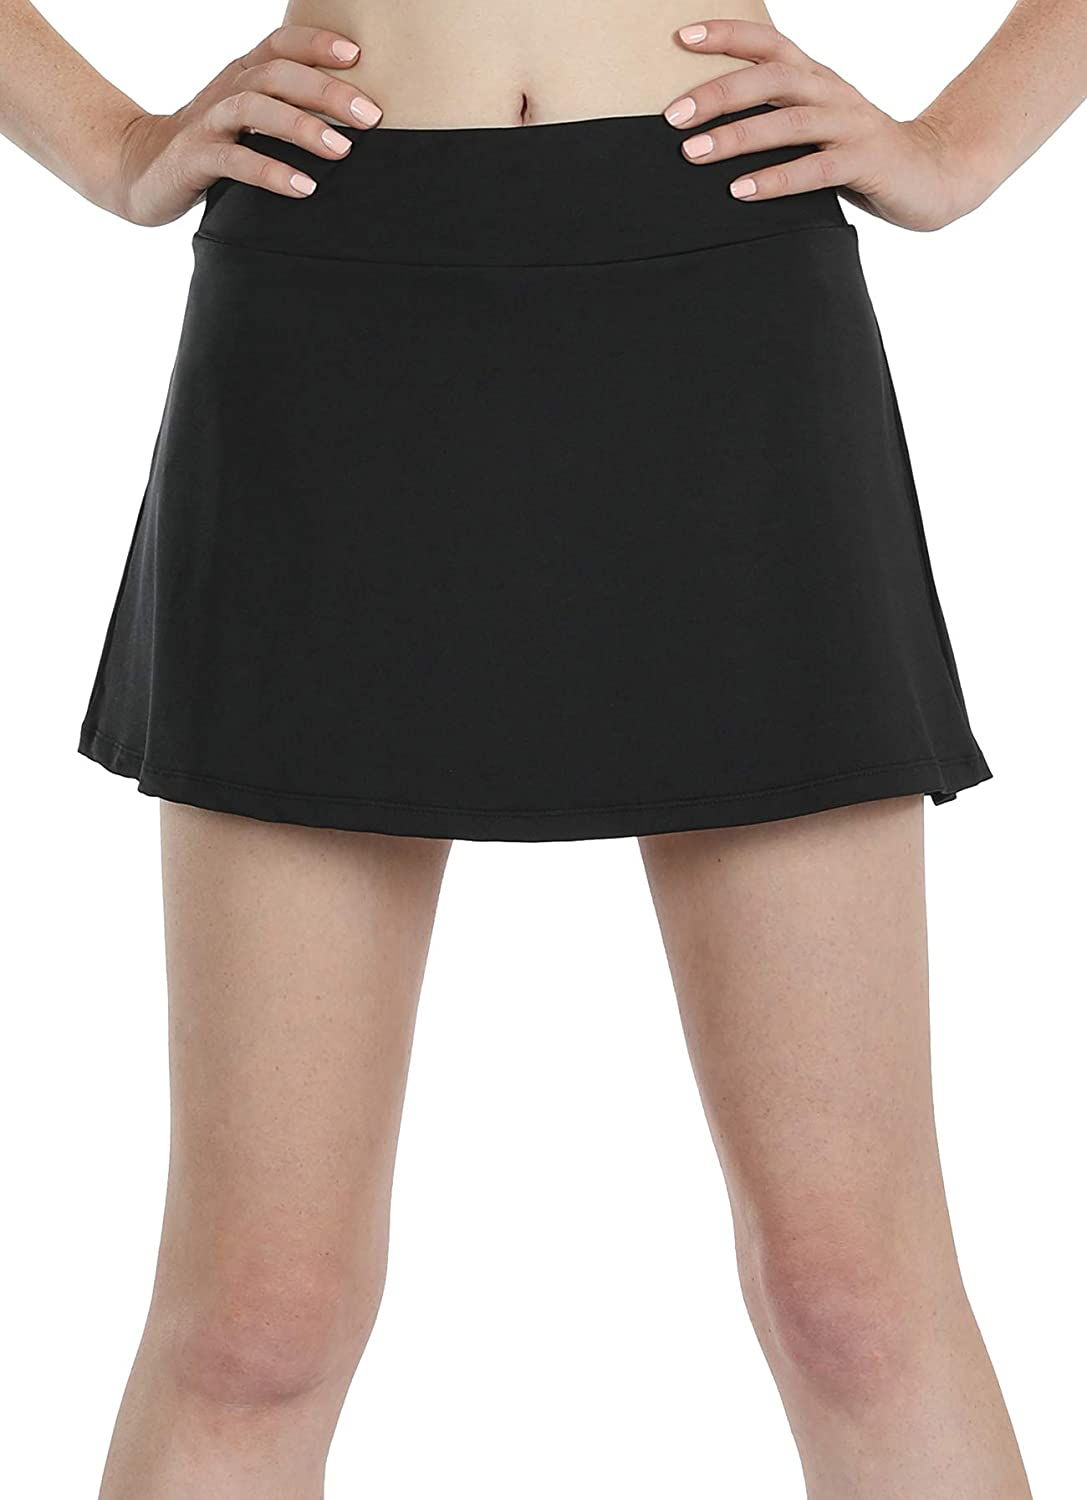 icyzone Athletic Skirts for Women Running Tennis Golf Special Online limited product price Workout -